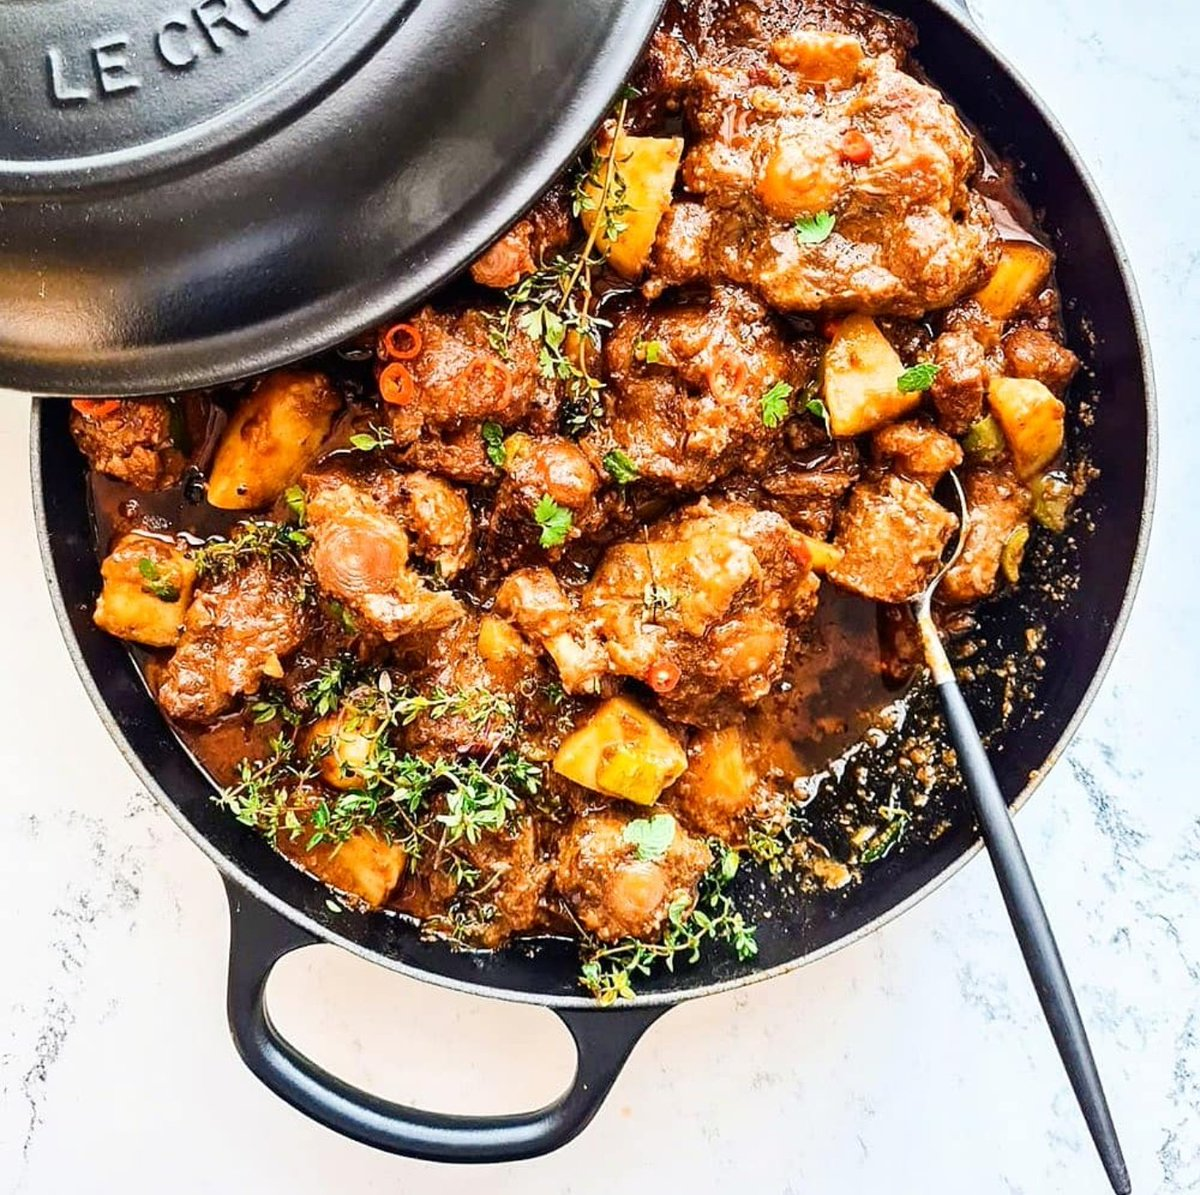 Sunday lunch sorted? OXTAIL STEW, CREAMED SPINACH STUFFED BUTTERNUT AND CHAKALAKA... Recipes below ♥️🍴🇿🇦 . . #Sibalicious #TraditionalFood #HeritageMonth #LeCreuset #Siba #Recipe #HeritageDay #Stew  https://t.co/RMTqEM6N14 https://t.co/Ggy2vHBhuM